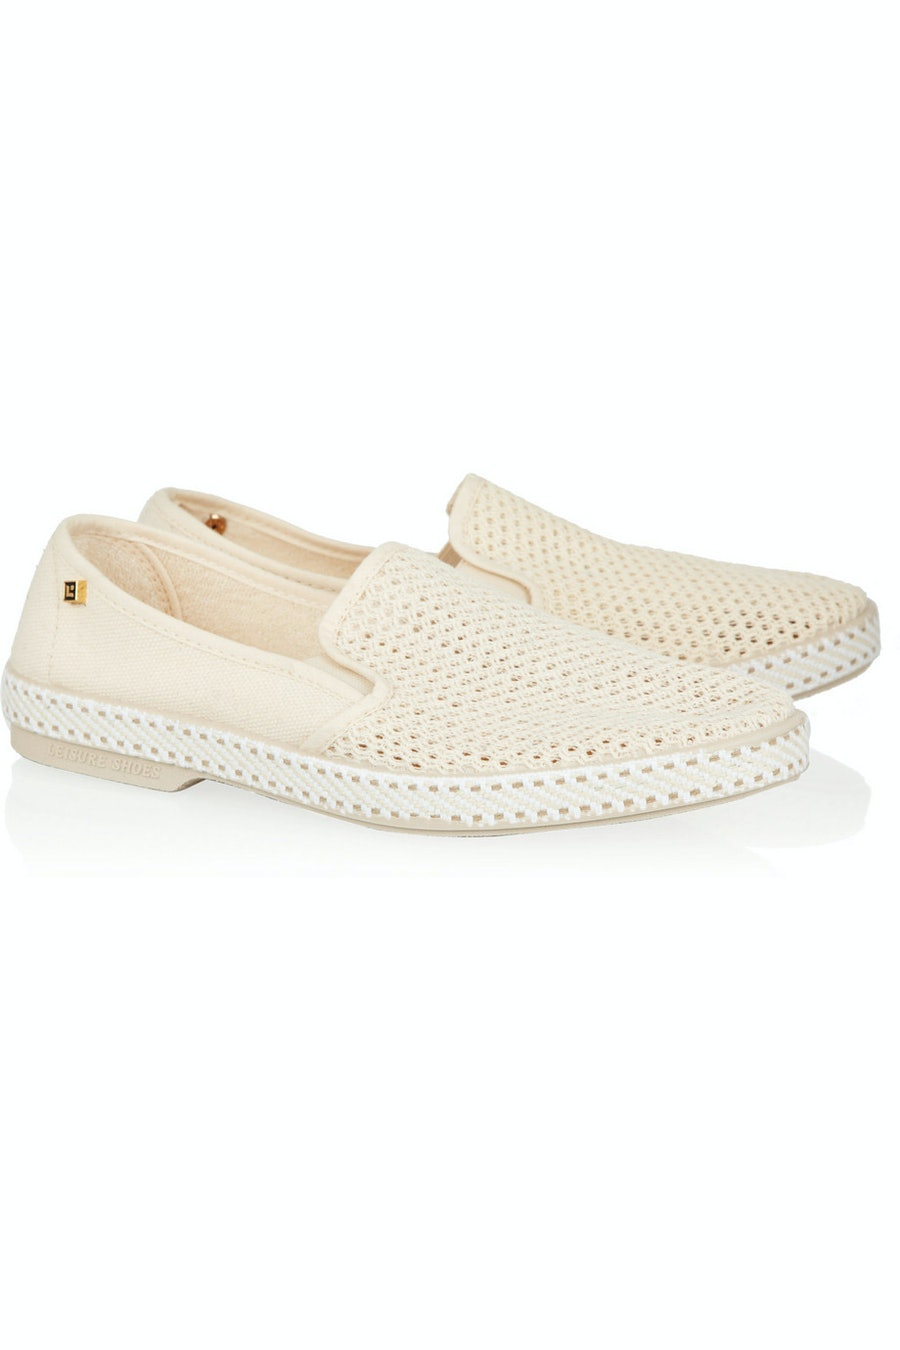 acar-RIVIERAS-canvas-slip-on-shoes